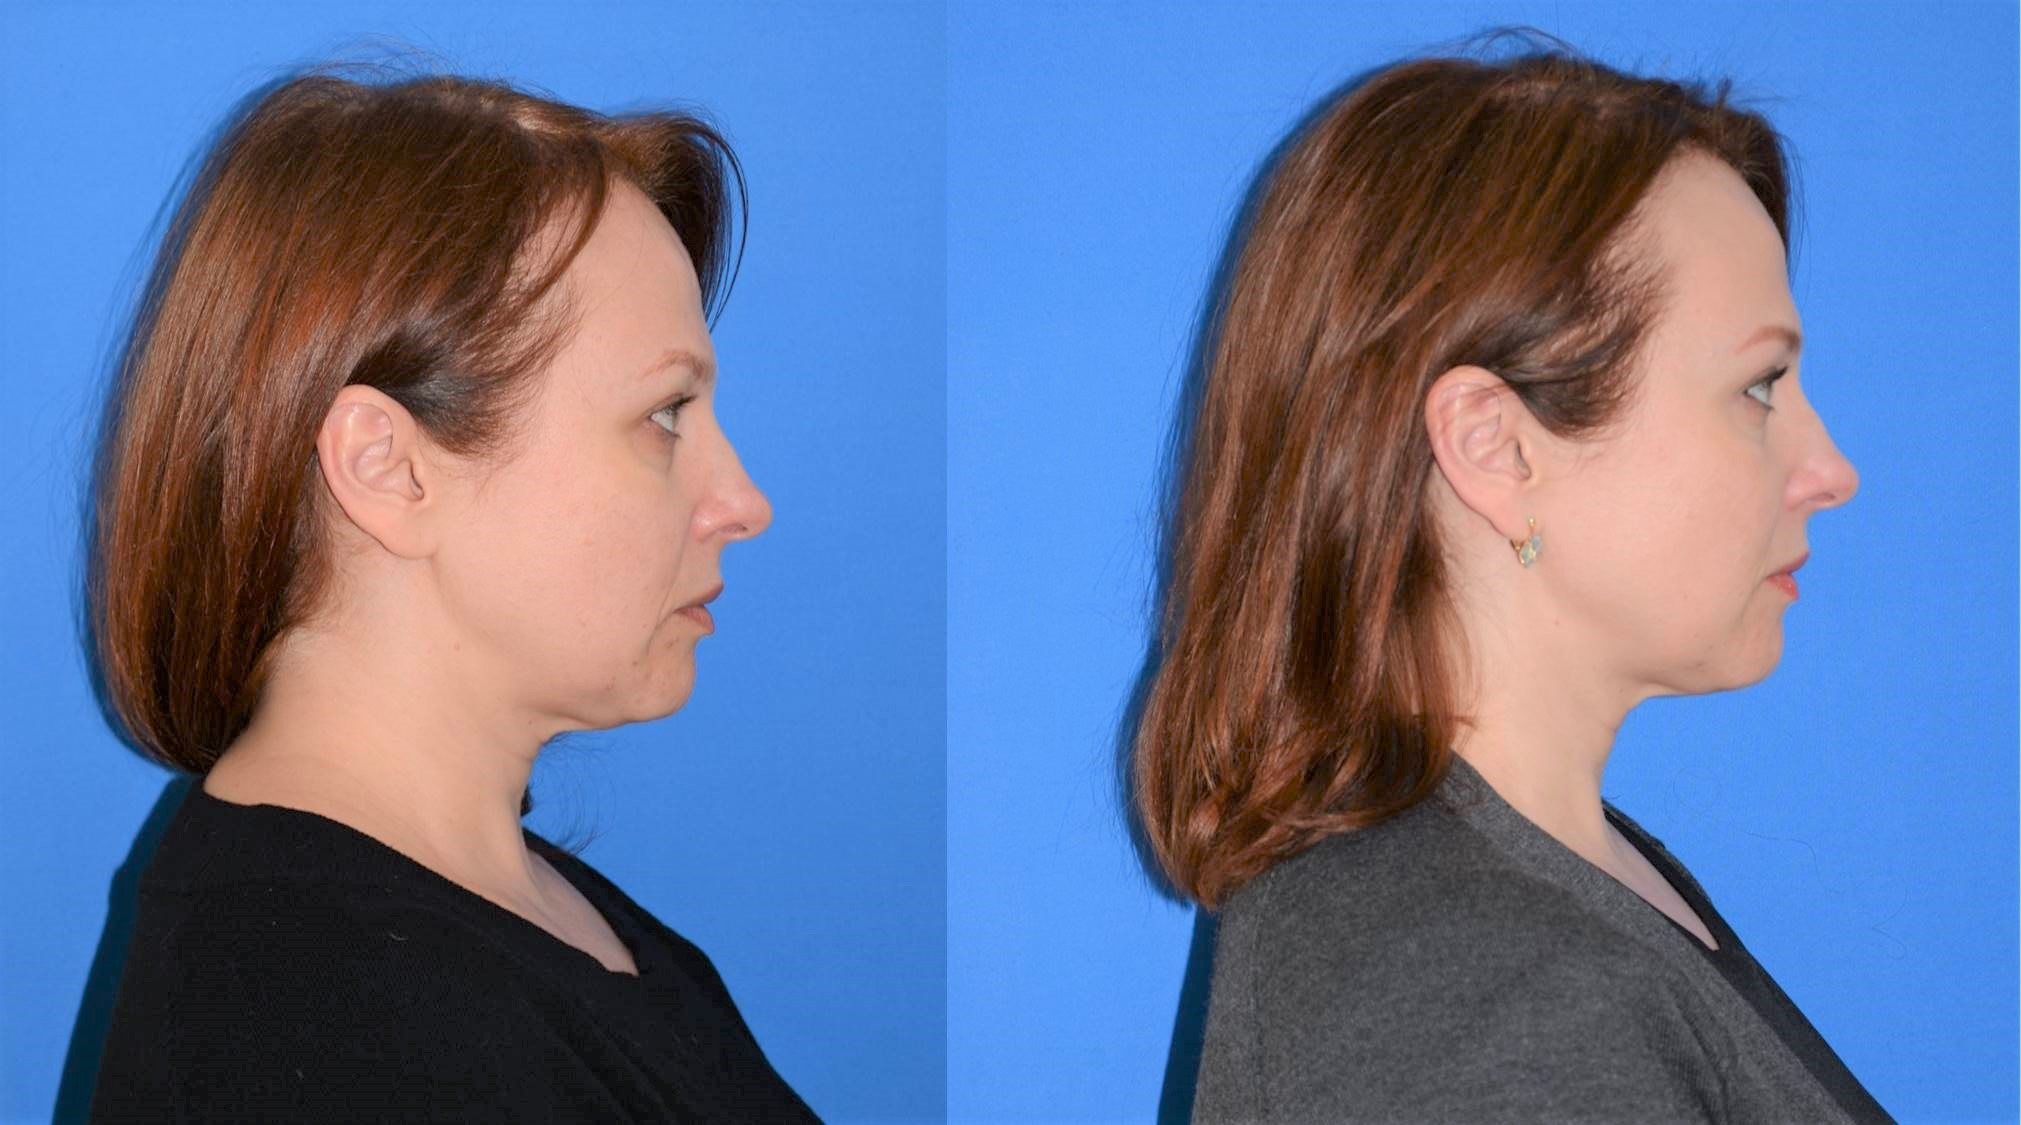 Our patient, 3 months post procedure.  Total results are expected between 6 and 12 months post procedure.  Notice the firmer, more defined profile and jawline.